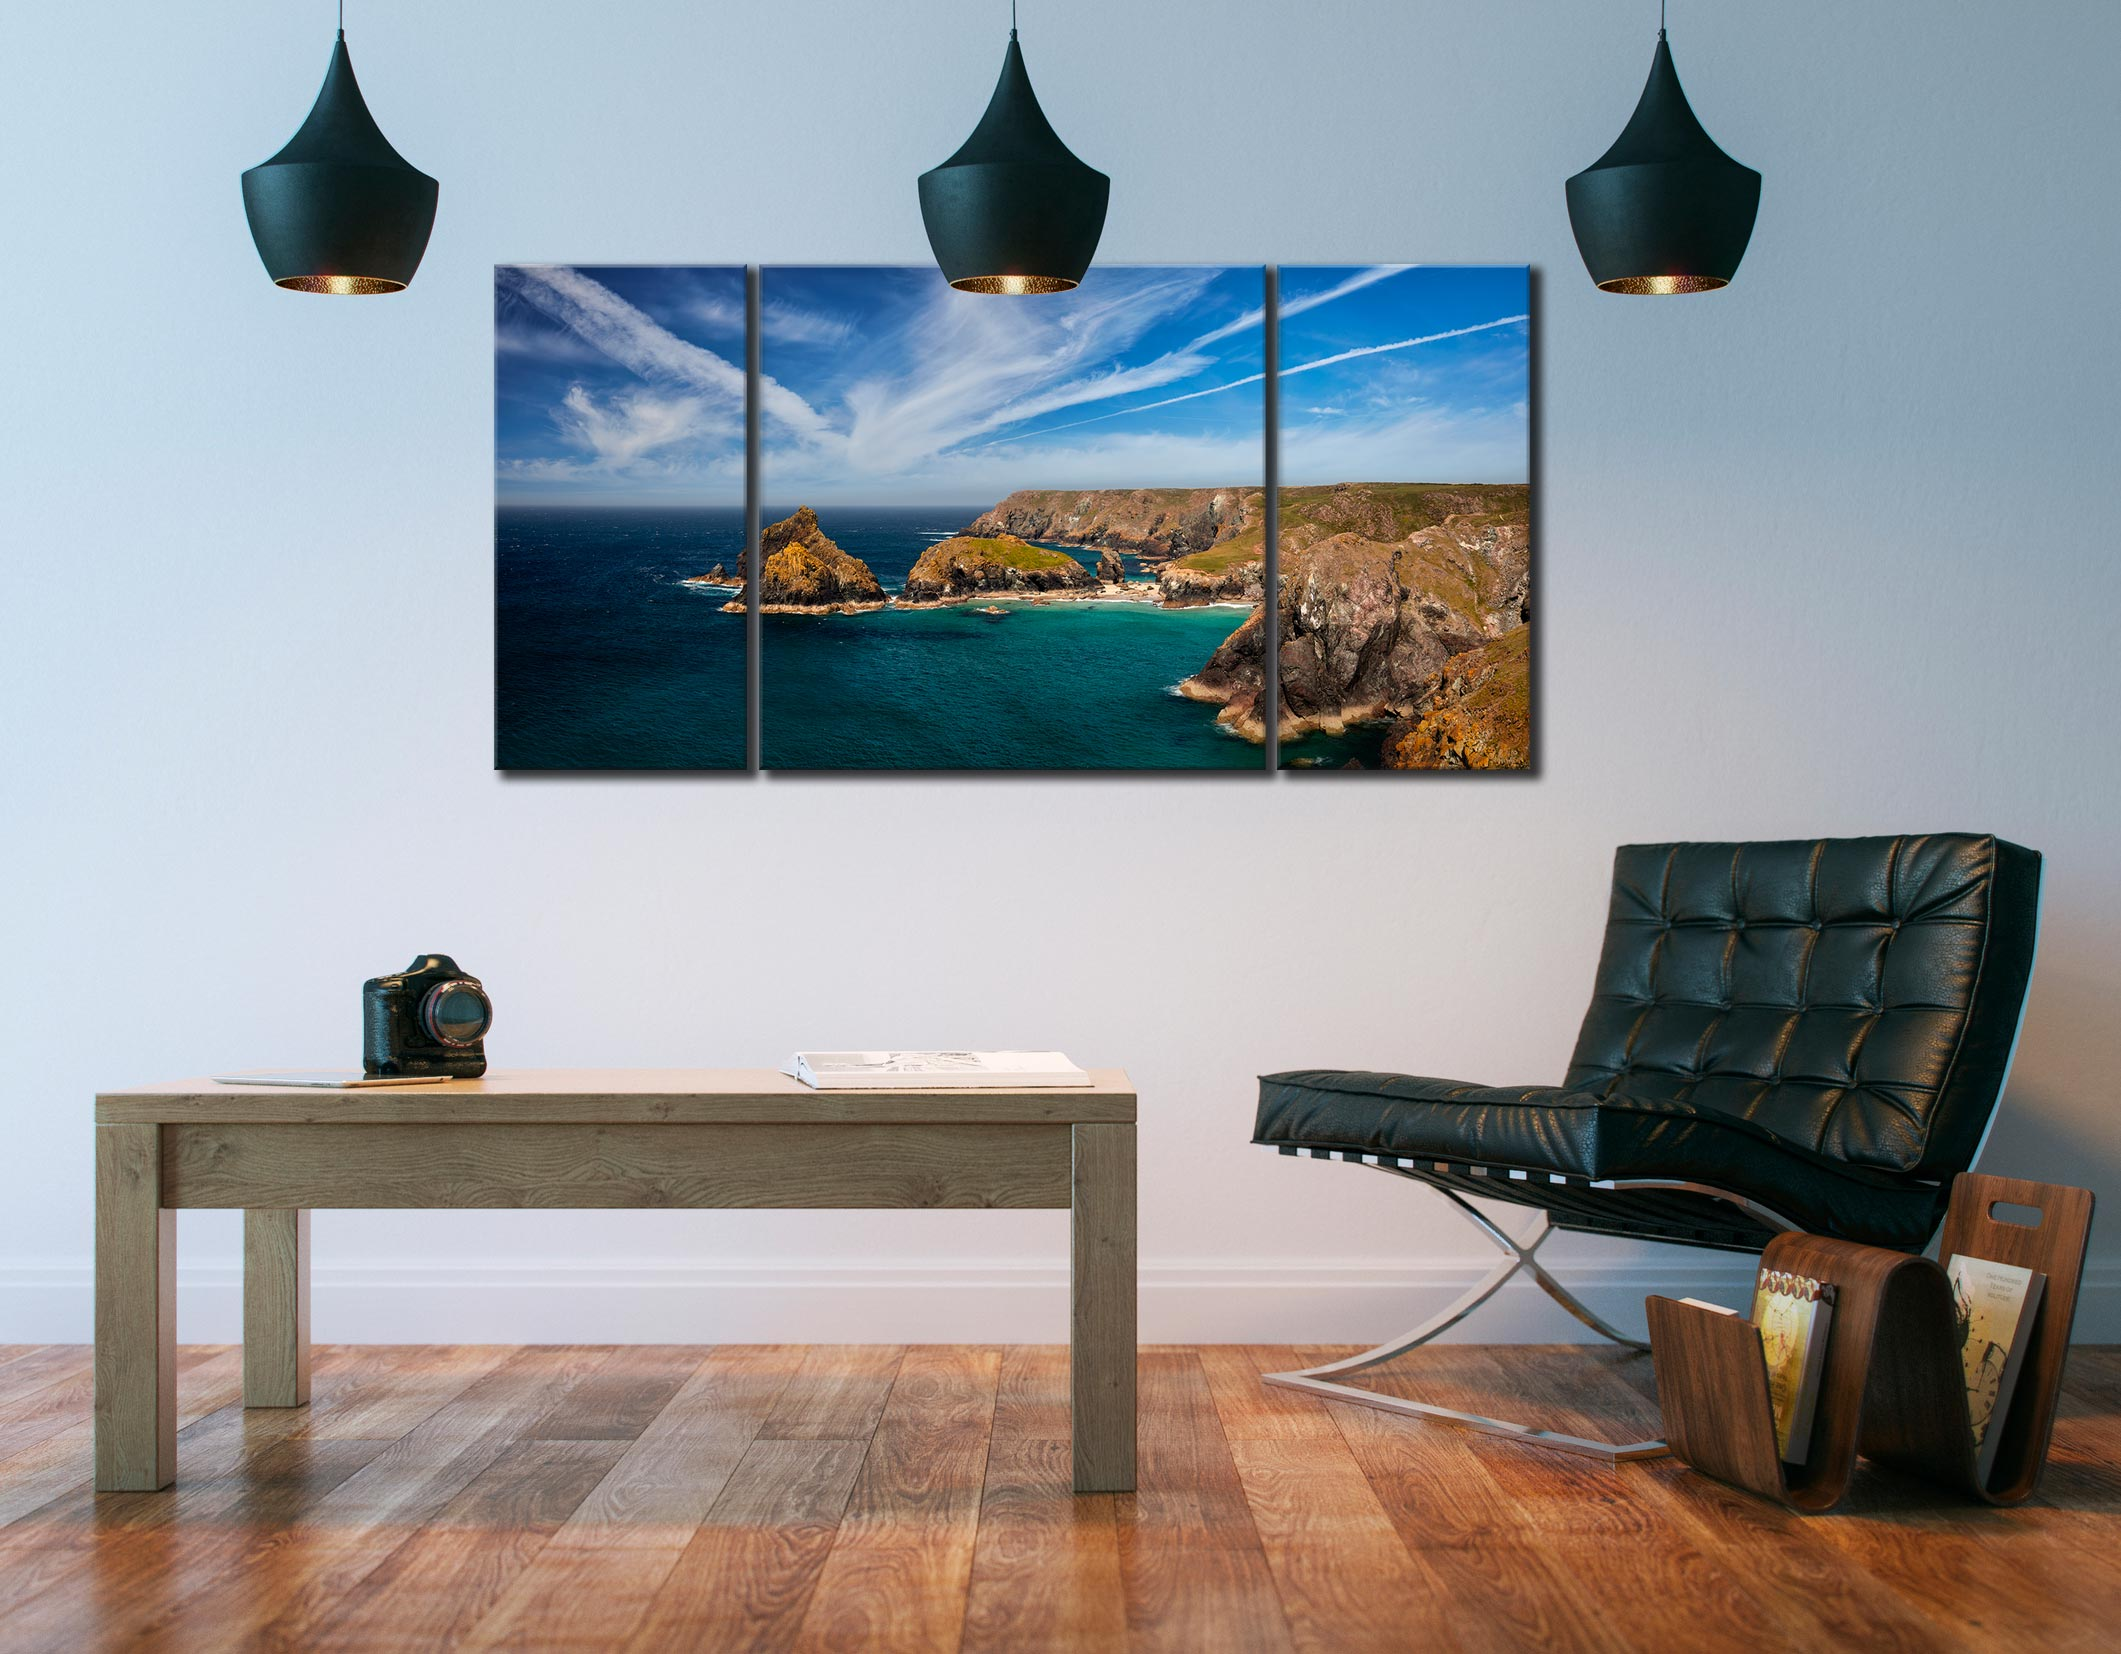 Green Ocean Kynance Cove - 3 Panel Wide Centre Canvas on Wall